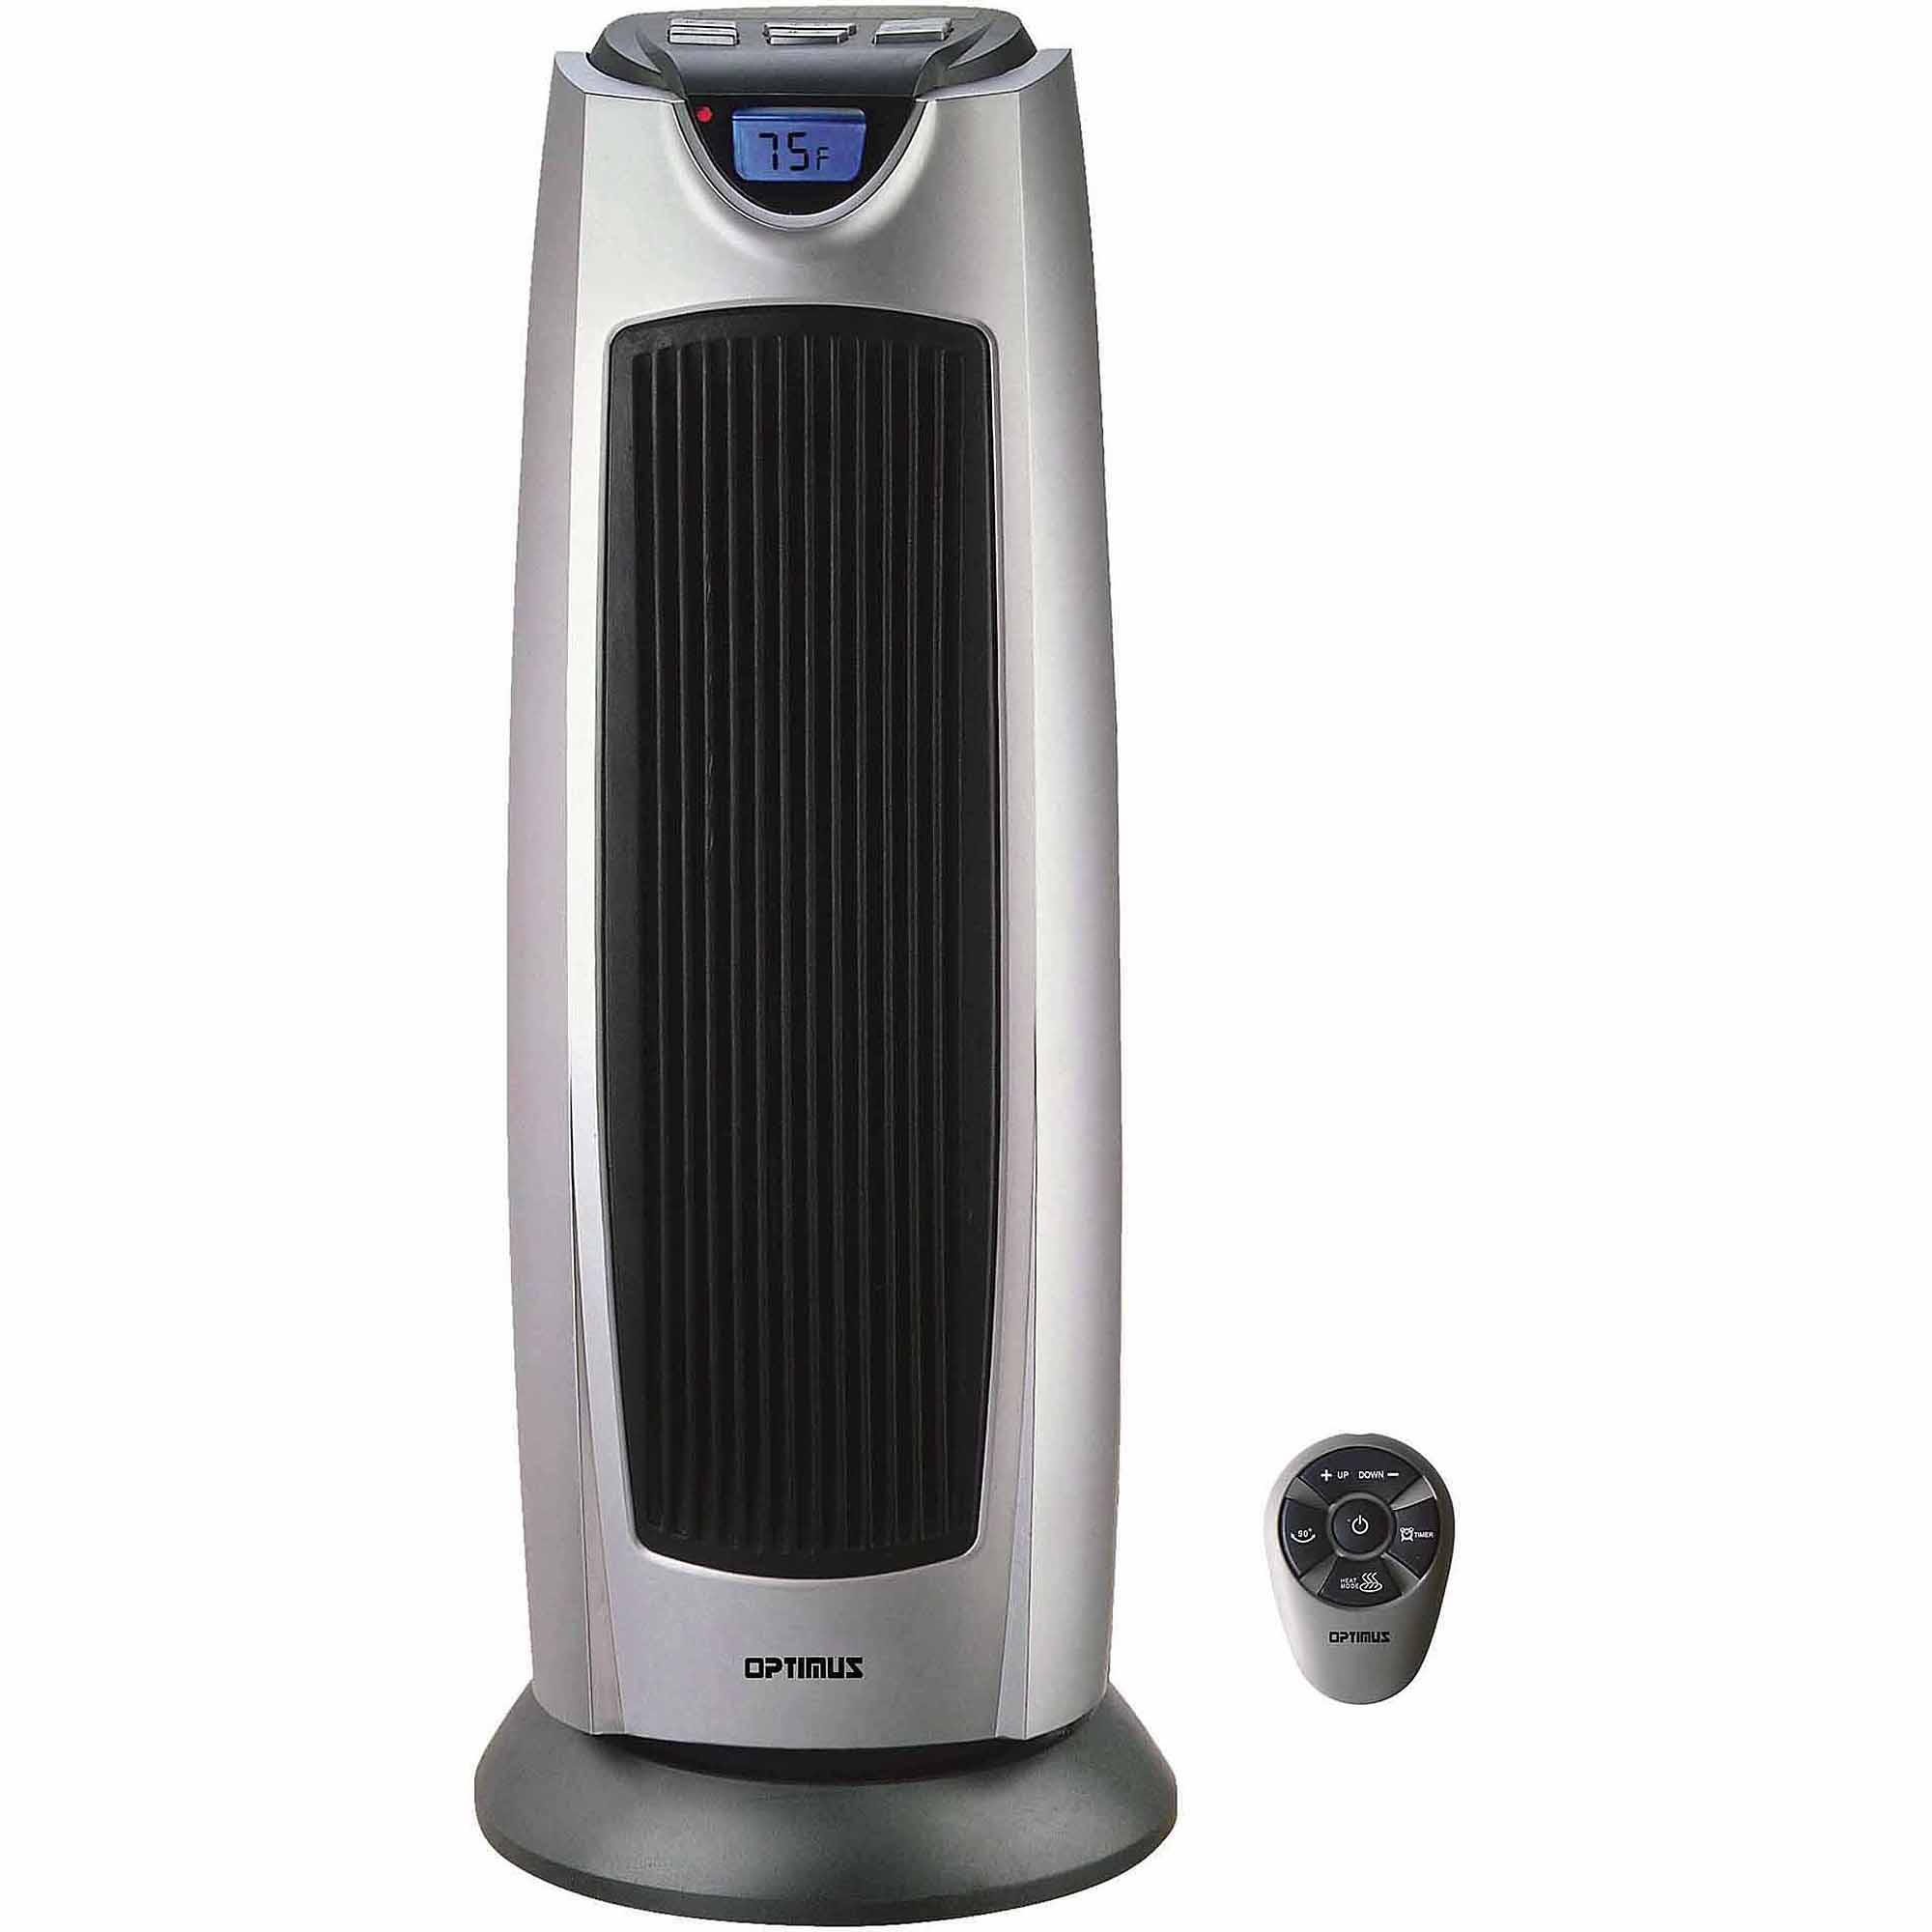 "Optimus 21"" Oscillating Tower Heater with Digital Temperature Readout, Setting and Remote Control"